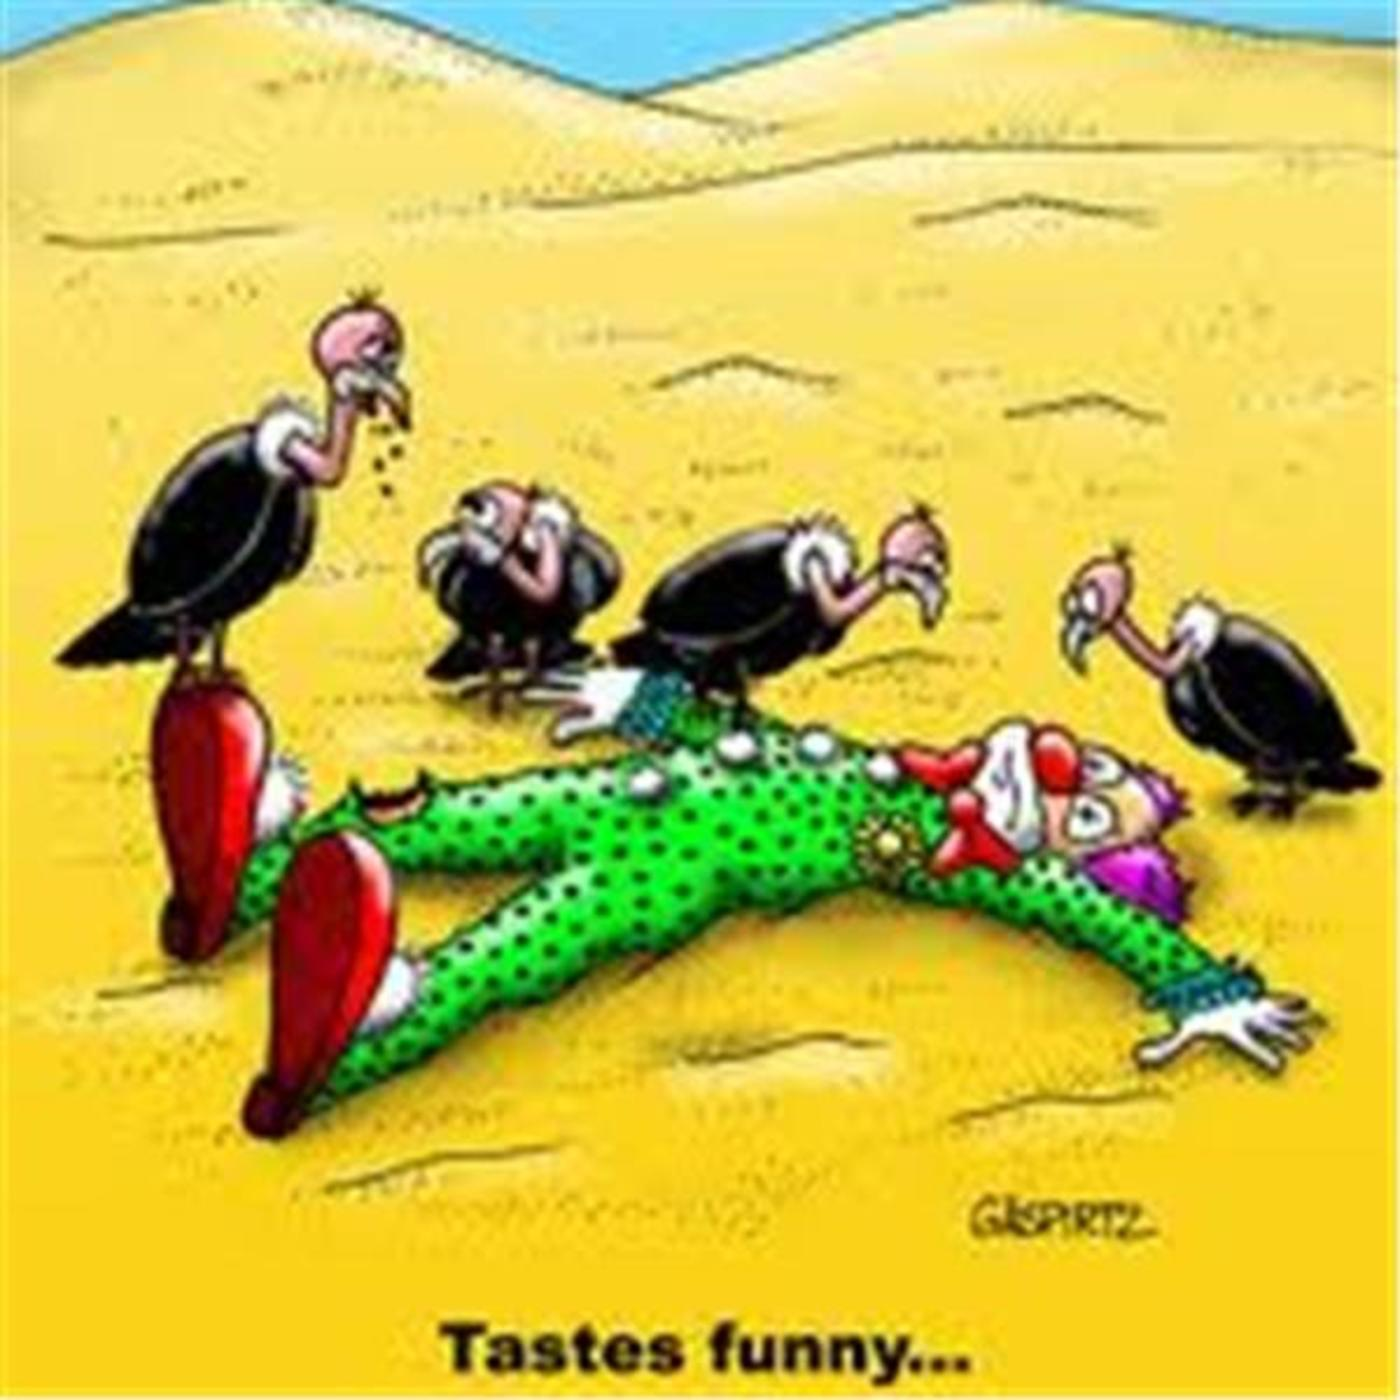 Stupidity and other practical jokes